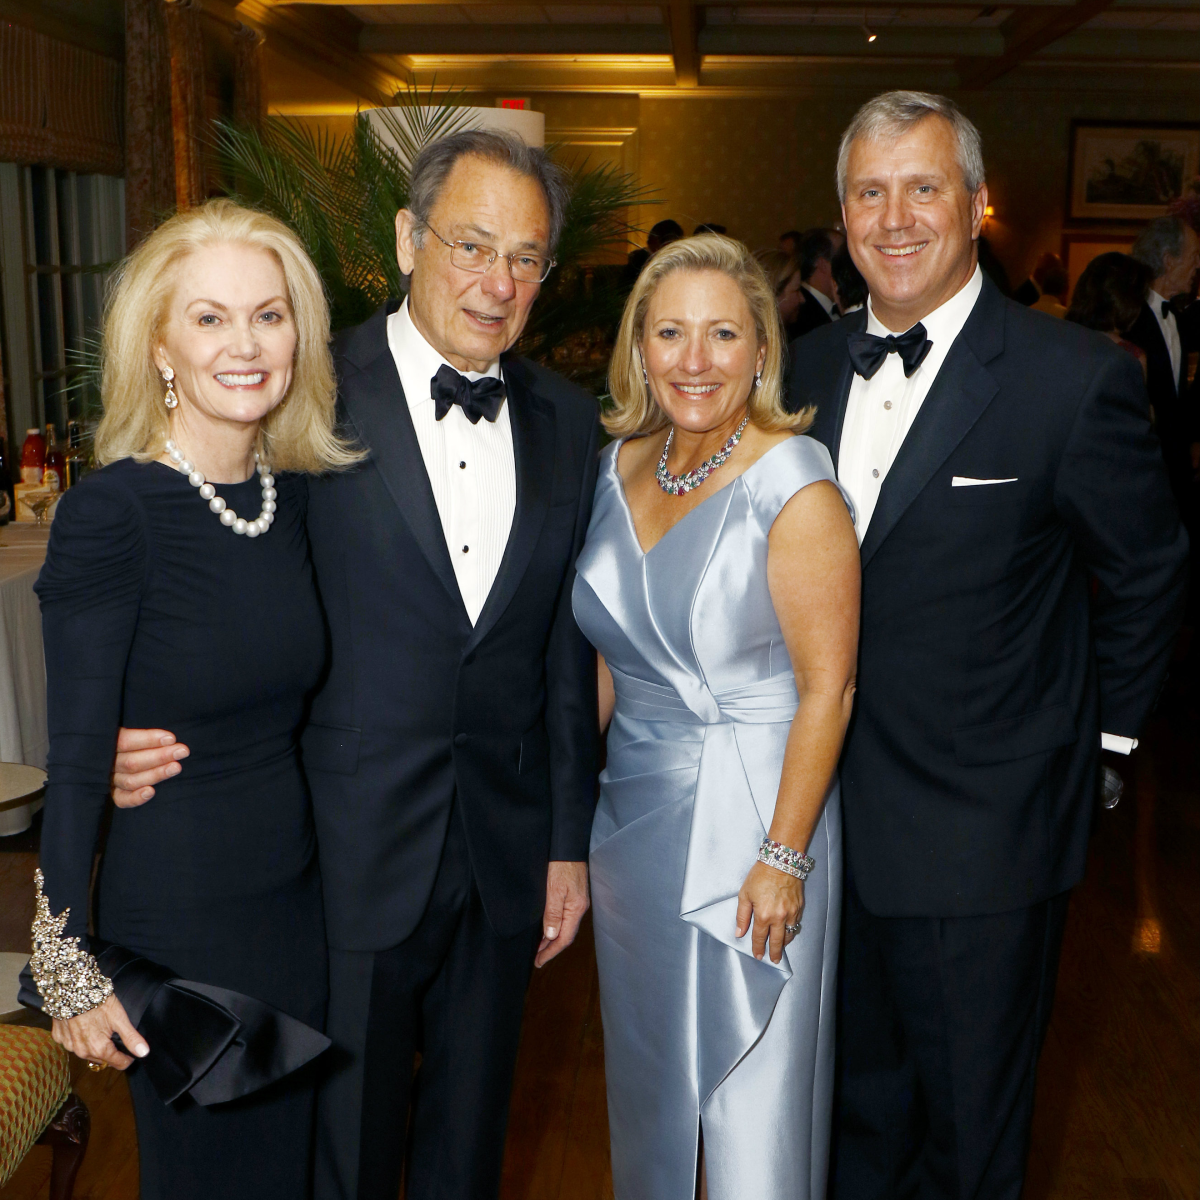 Nancy Cain Marcus & Tom Roush and Carolyn and Karl Rathjen